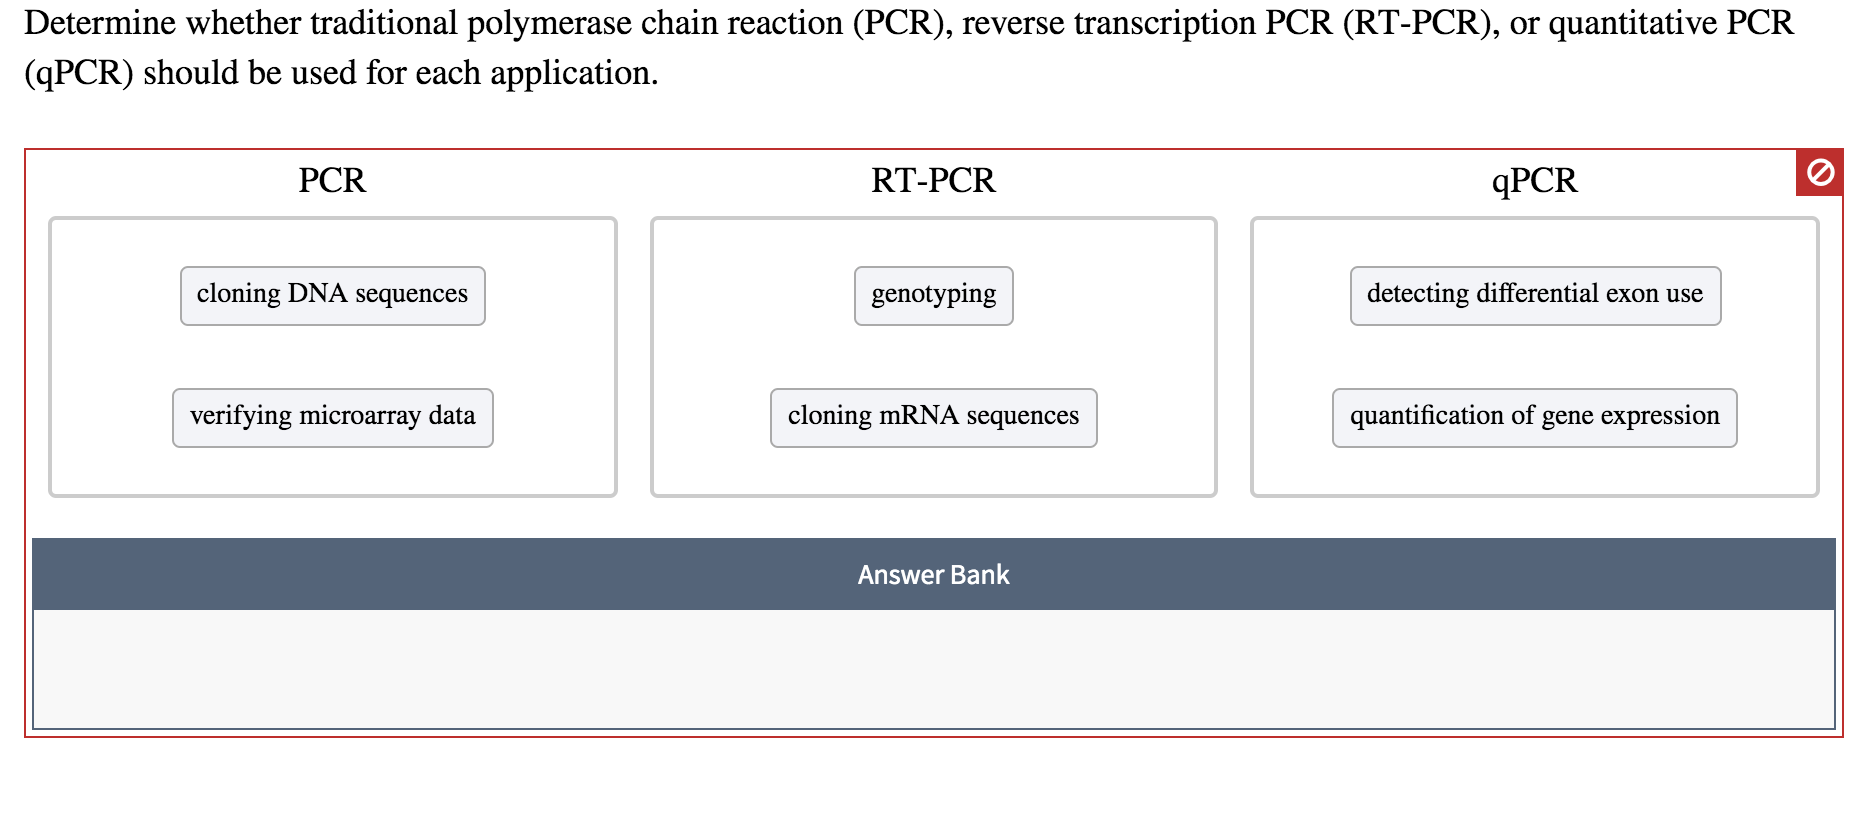 Determine whether traditional polymerase chain reaction (PCR), reverse transcription PCR (RT-PCR), or quantitative PCR (qPCR) should be used for each application PCR RT-PCR ДРCR cloning DNA sequences detecting differential exon use genotyping cloning MRNA sequences verifying microarray data quantification of gene expression Answer Bank о